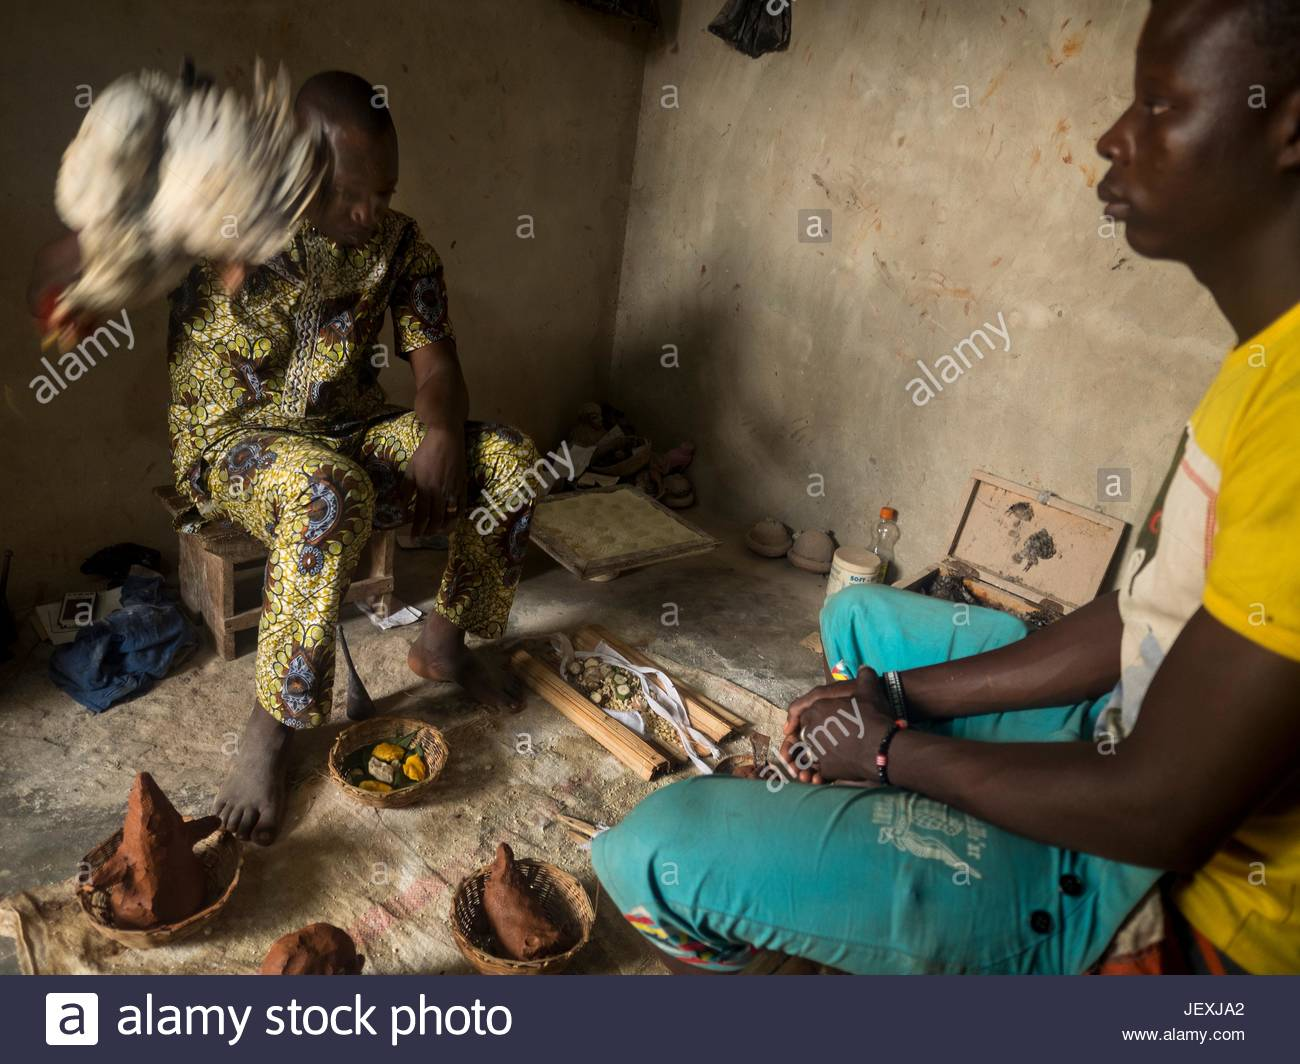 Fetishes on the floor by an herbal healer, doing a Vossissa treatment on a patient. - Stock Image